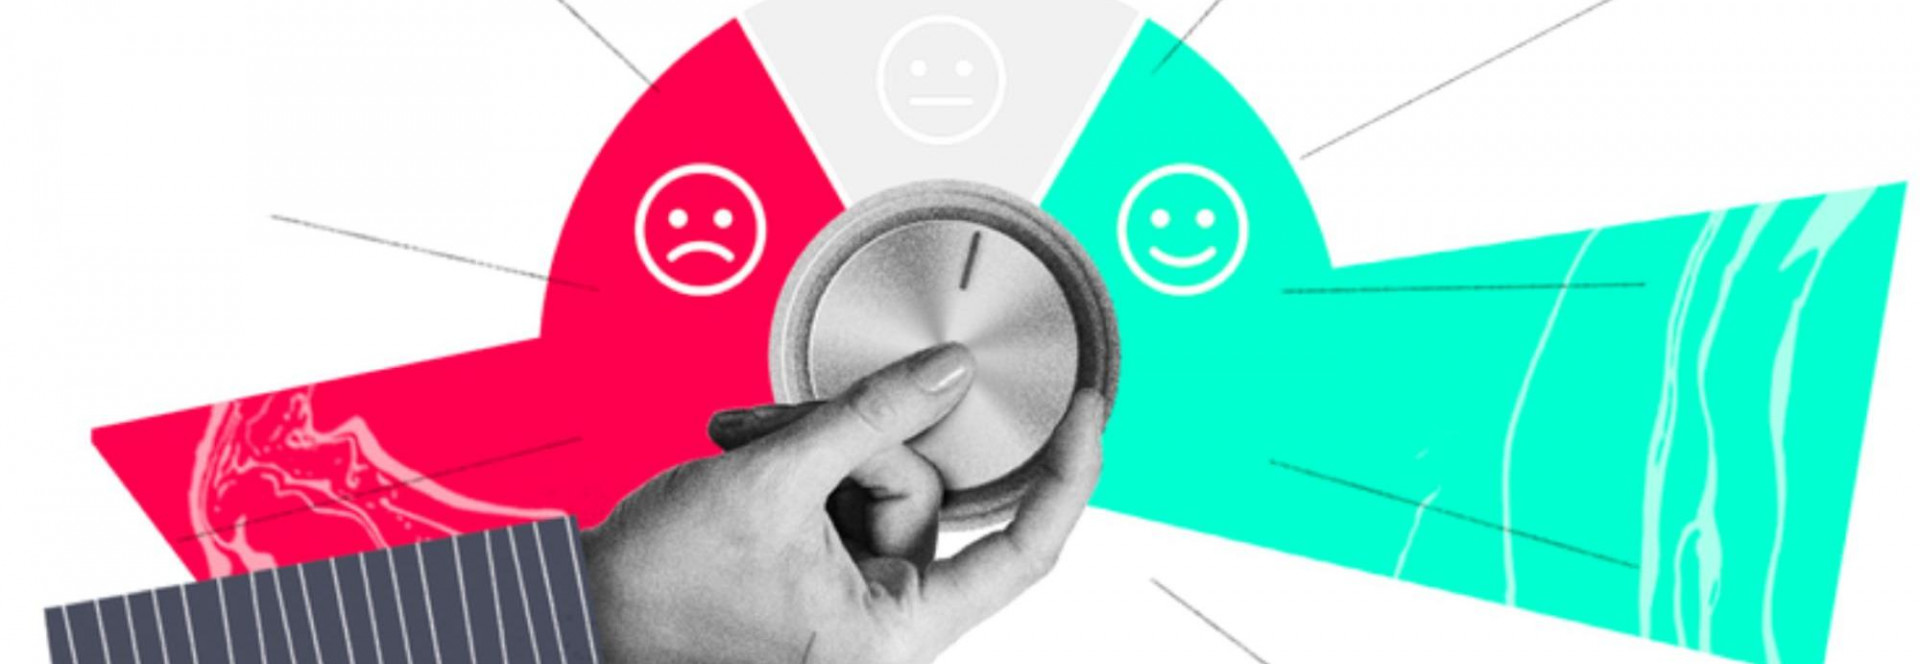 Invest in Customer Experience to Increase Sales Conversions